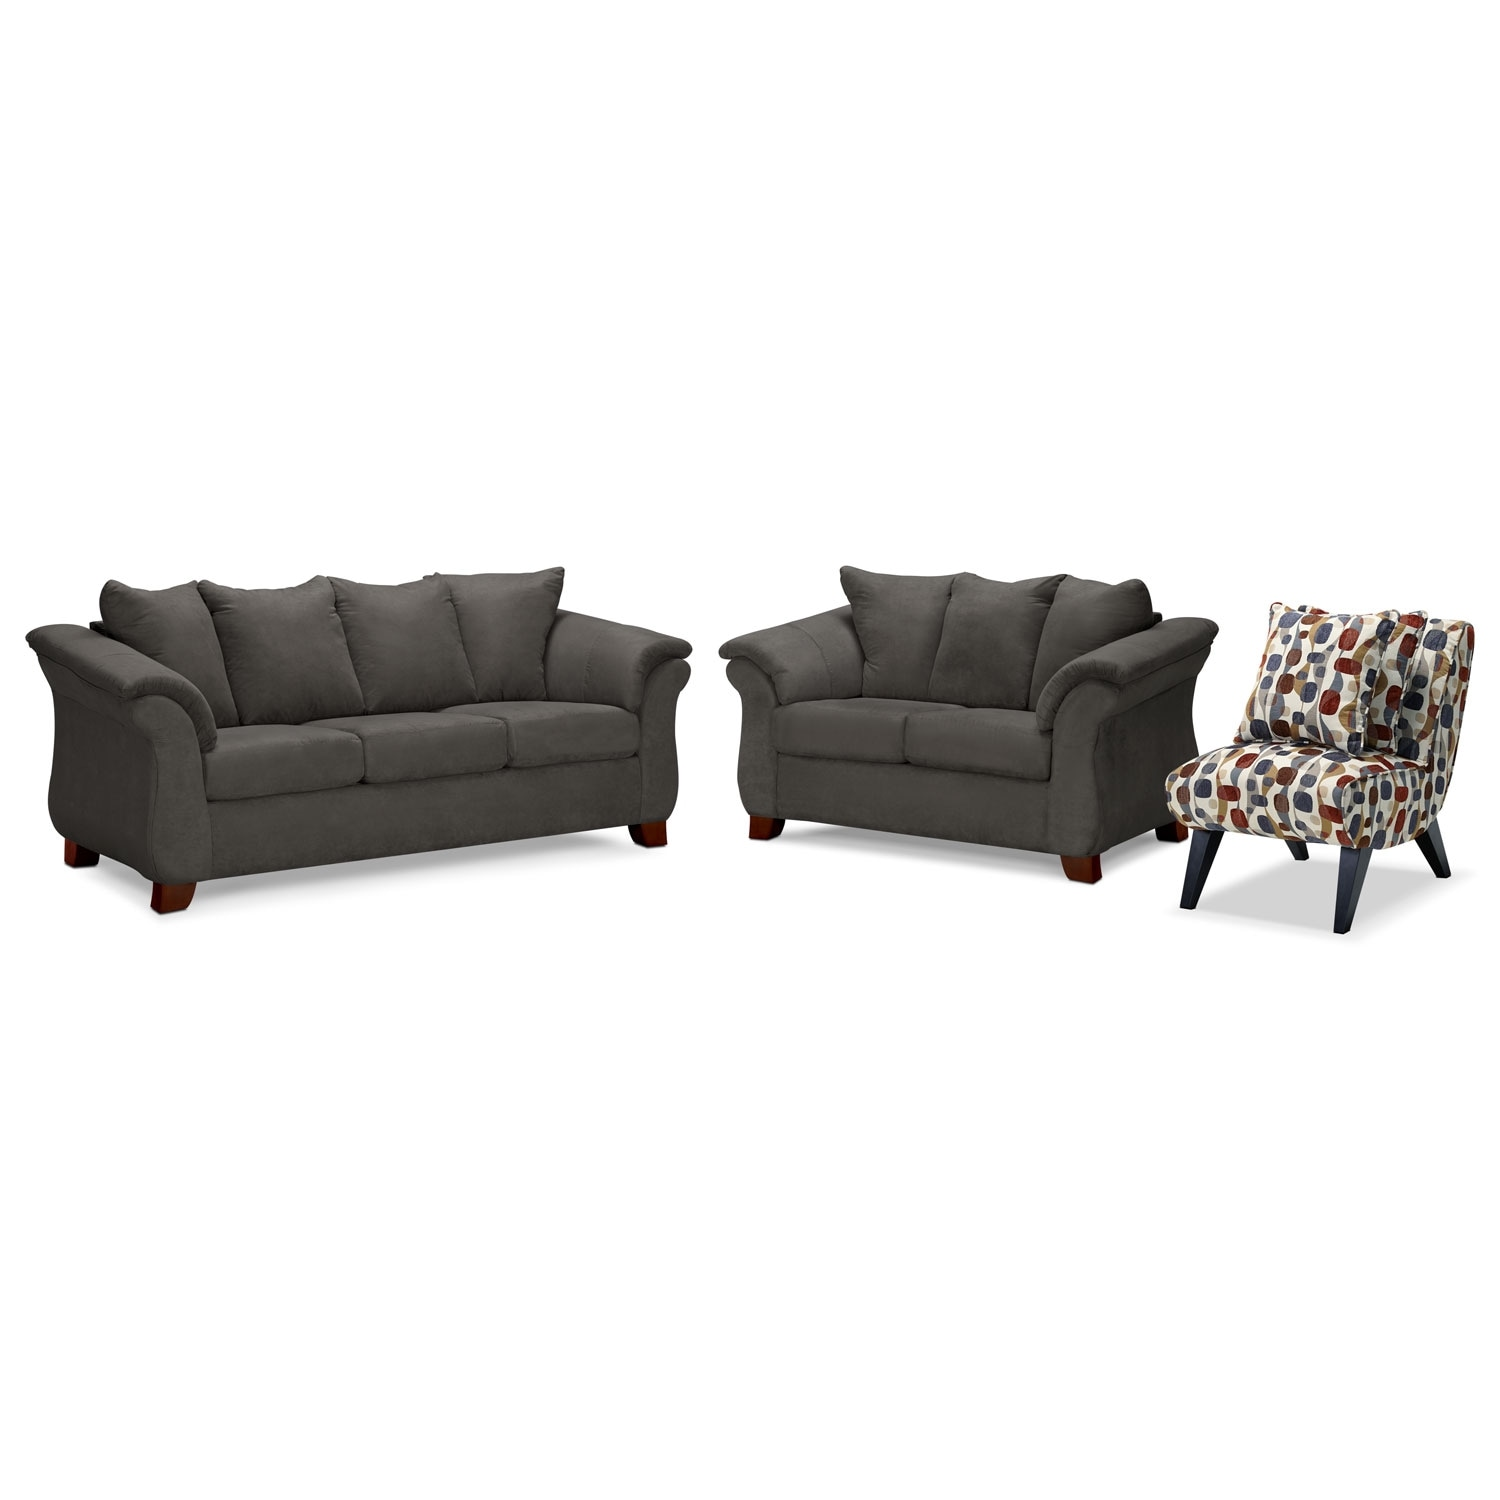 Adrian Sofa Loveseat And Accent Chair Set Graphite Value City Furniture